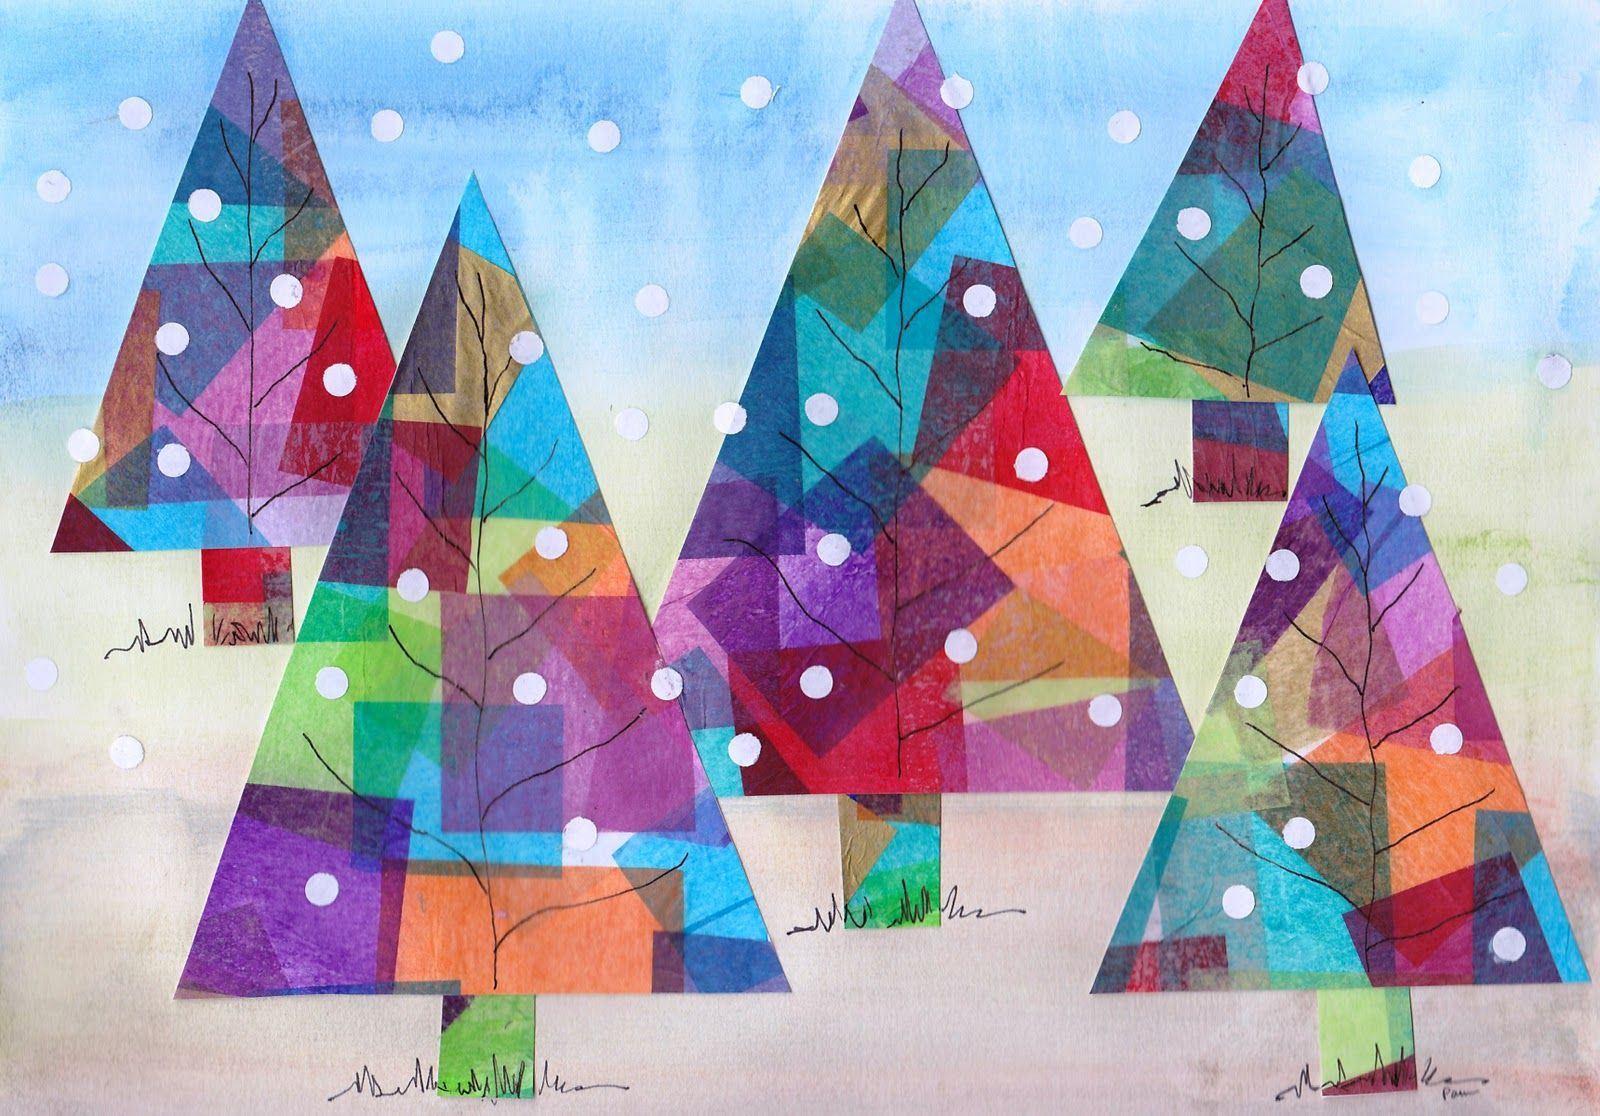 Adventsbasteln Grundschule Paper Tissue Xmas Tree | Art Lessons Inspiration